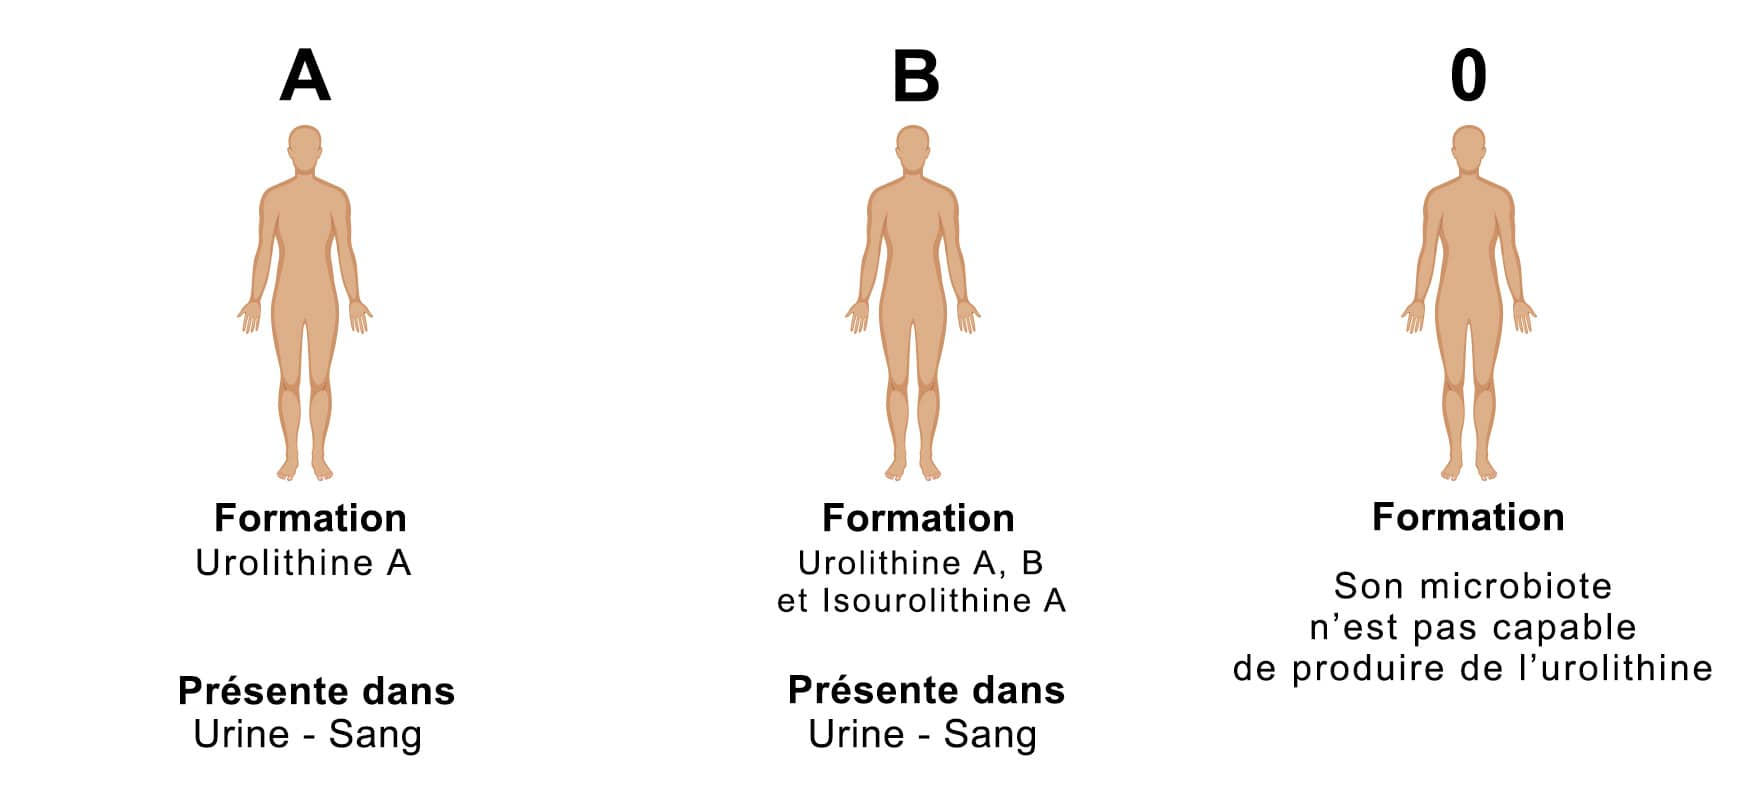 Formation d'urolithines selon les phénotypes